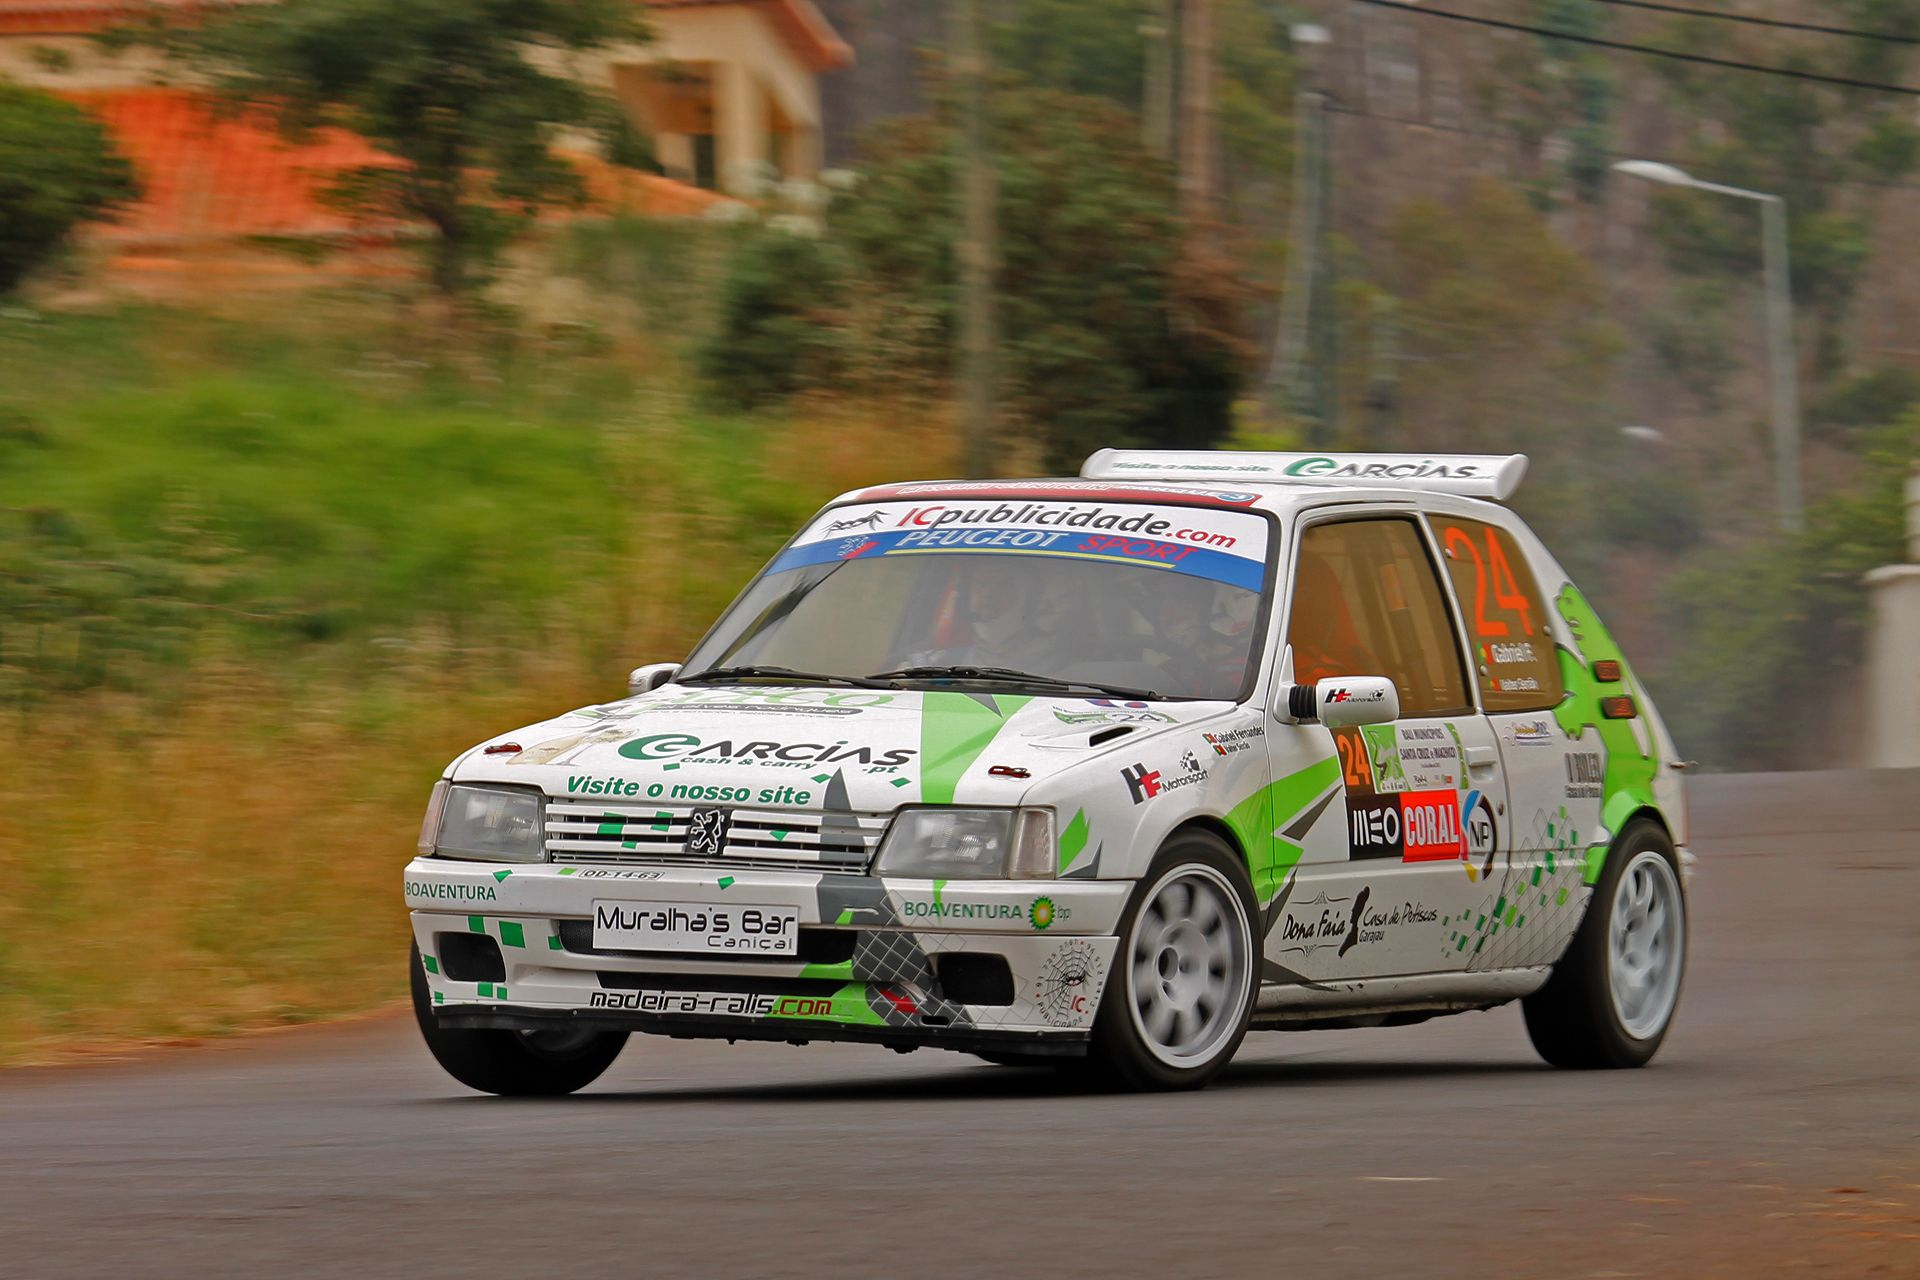 peugeot 205 1 9 gti rally car classic cars cars rally car ja rally. Black Bedroom Furniture Sets. Home Design Ideas